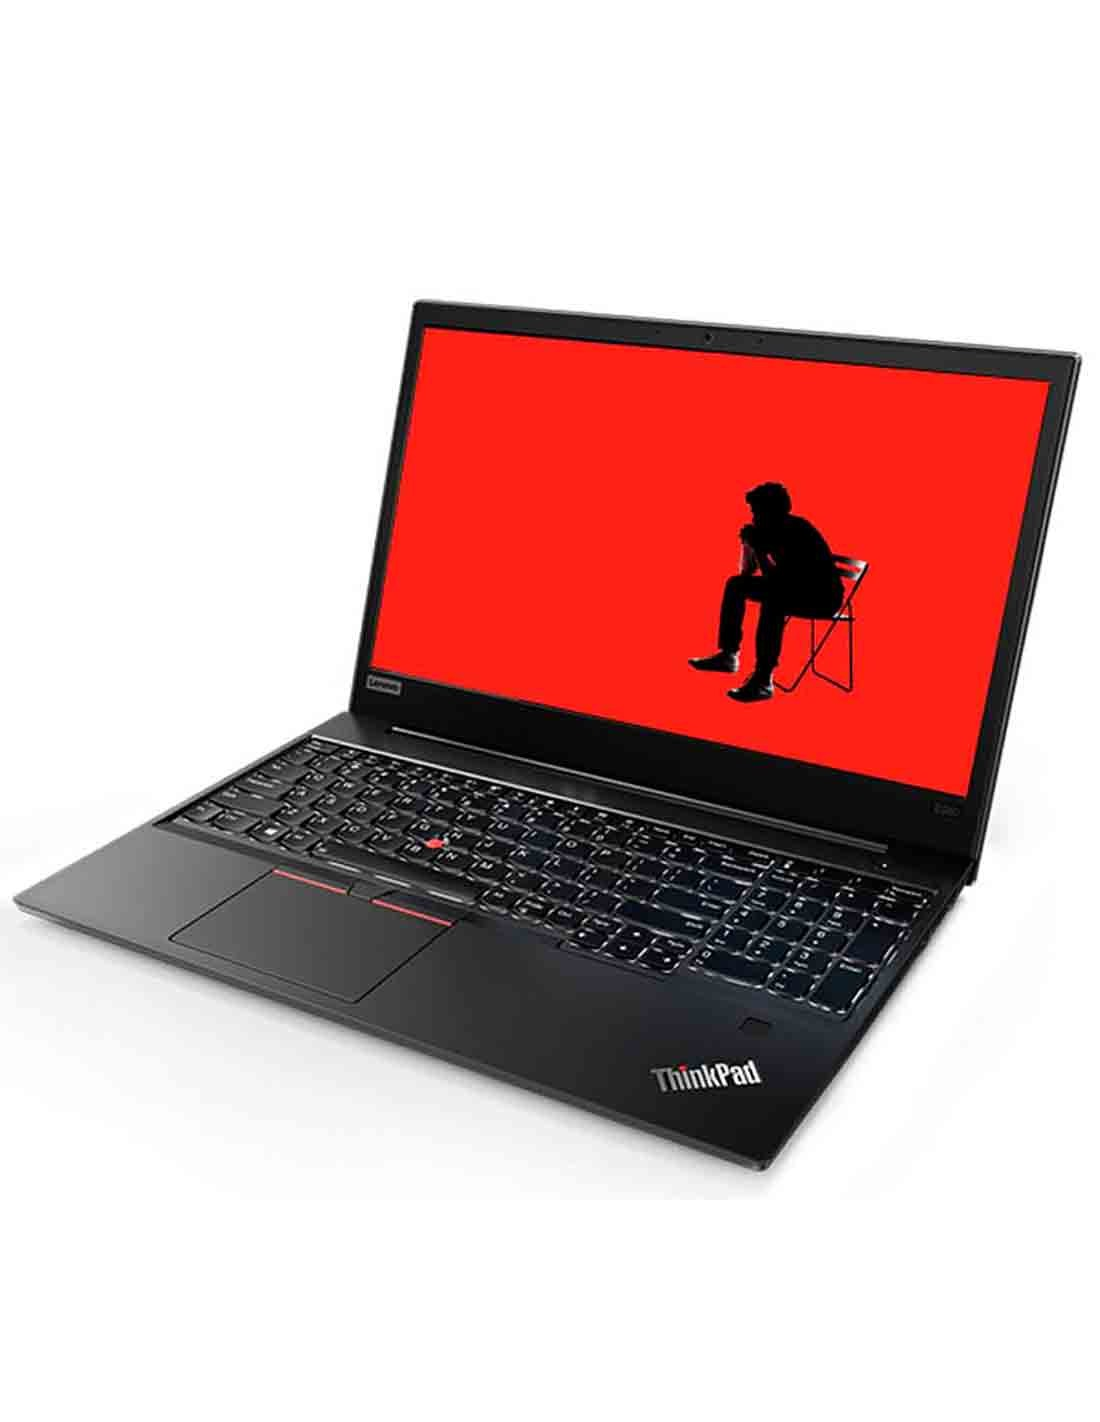 ThinkPad E580 Core i7 at a cheap price and free delivery in Dubai